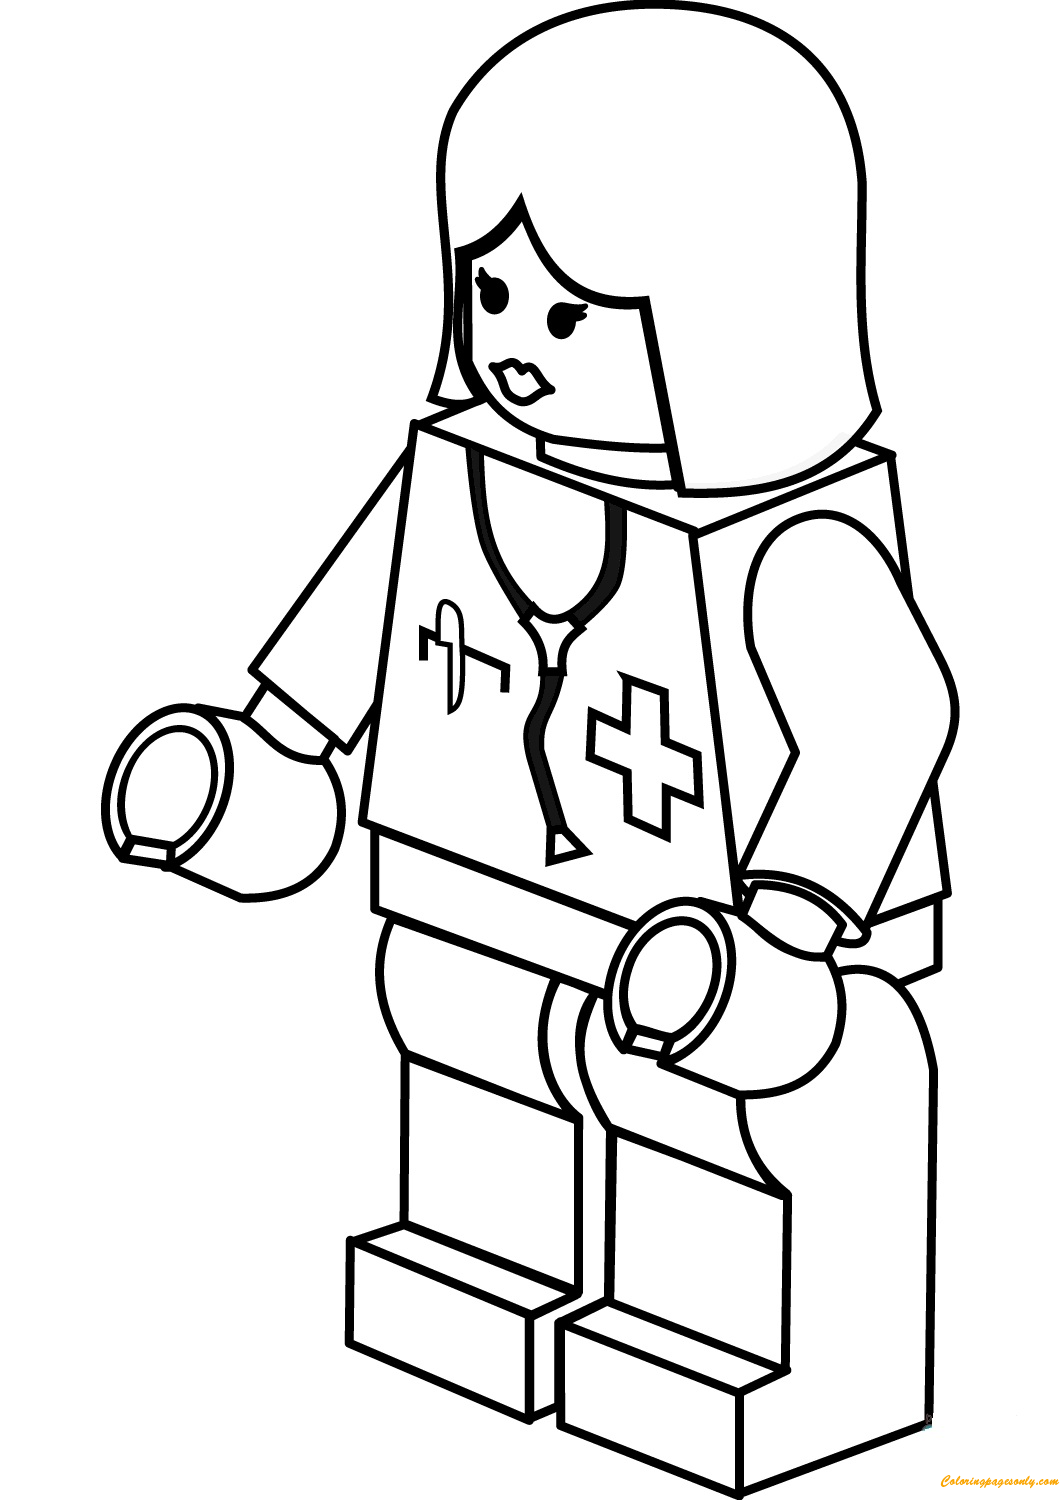 Lego City Lady Doctor Coloring Pages Toys And Dolls Coloring Pages Free Printable Coloring Pages Online